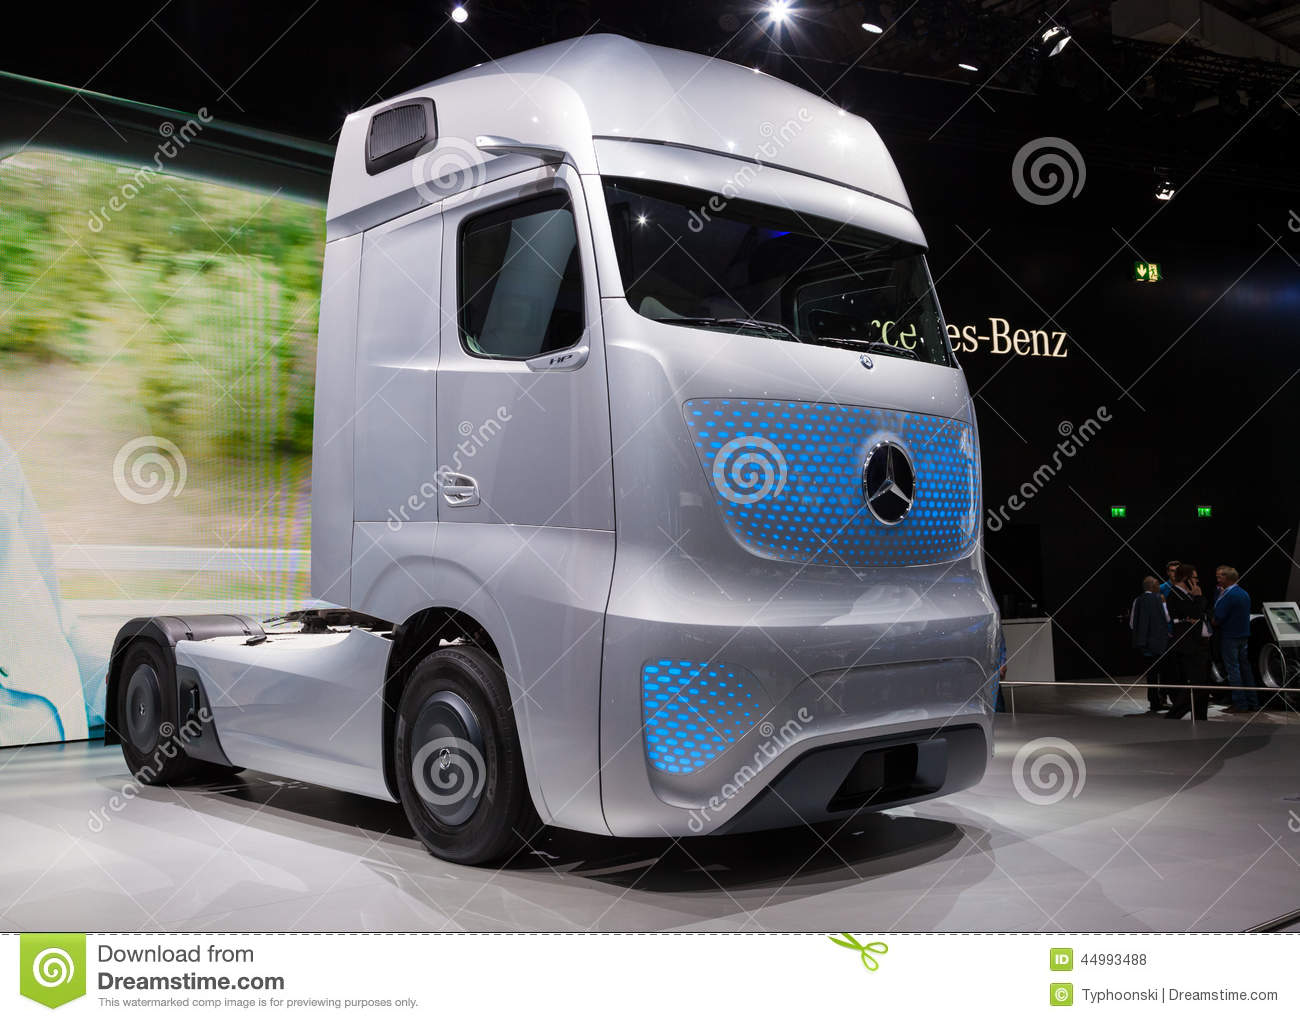 mercedes benz future truck ft 2025 editorial stock photo image 44993488. Black Bedroom Furniture Sets. Home Design Ideas